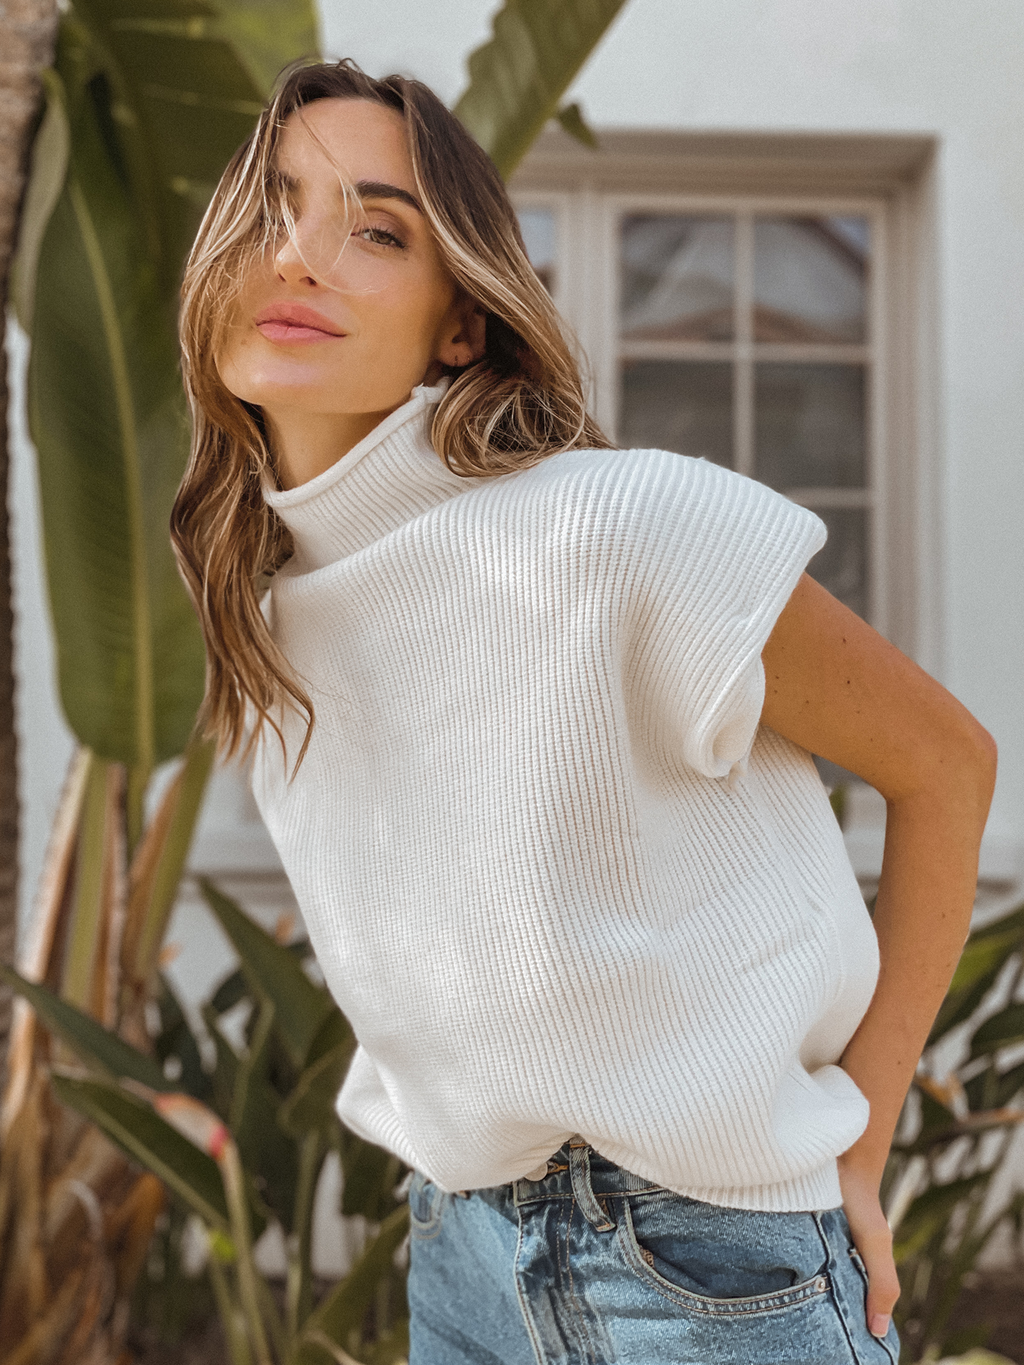 Vanilla Bean Knit Top - Stitch And Feather